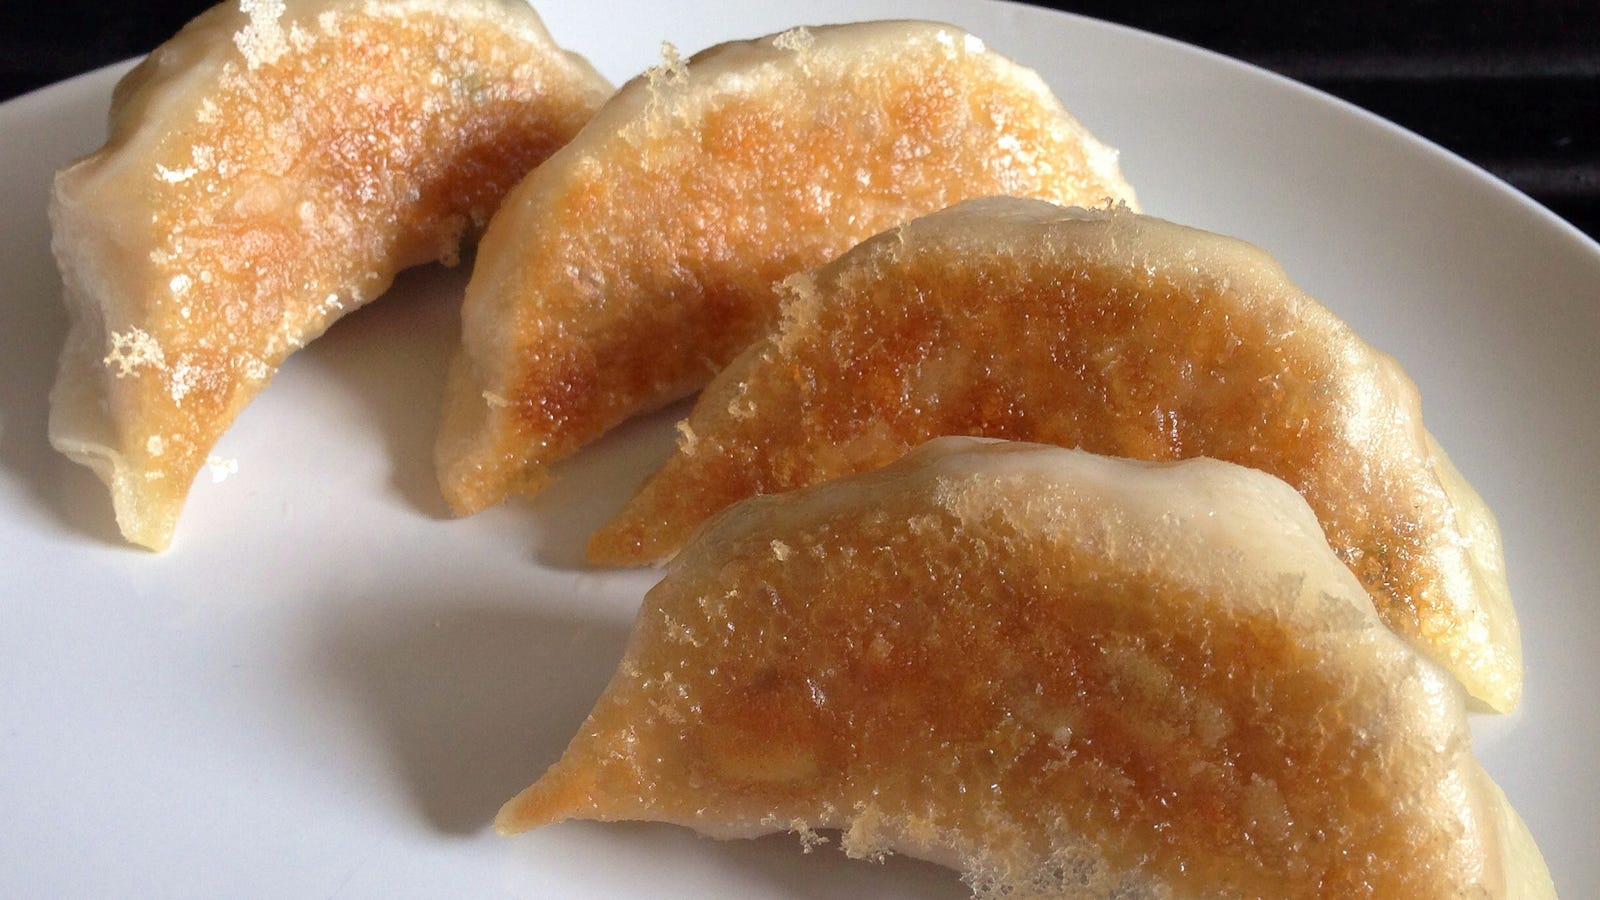 Steam Fry Frozen Dumplings And Potstickers For Perfectly